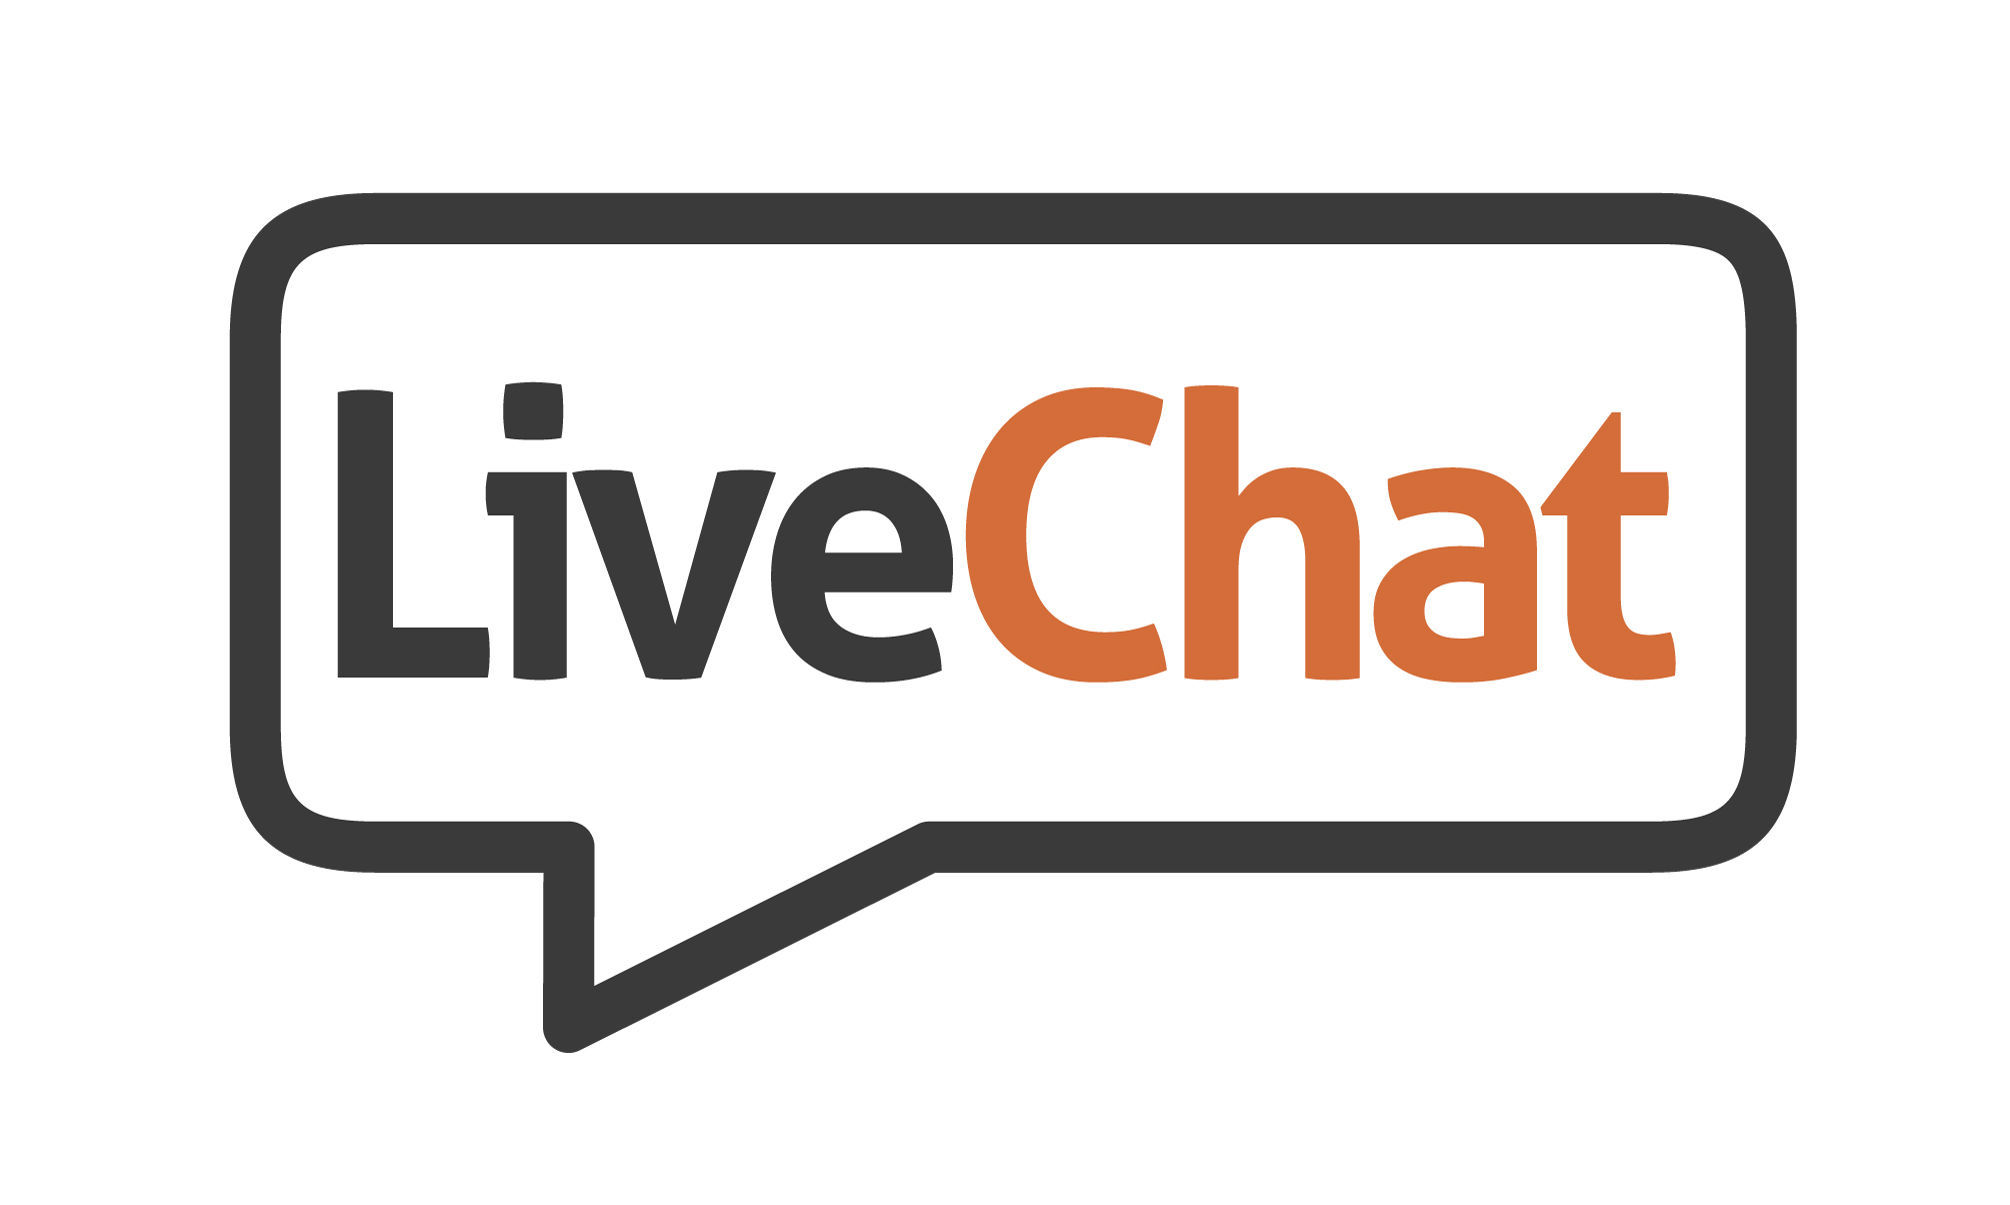 LiveChat - Live Chat Software : SaaSworthy.com